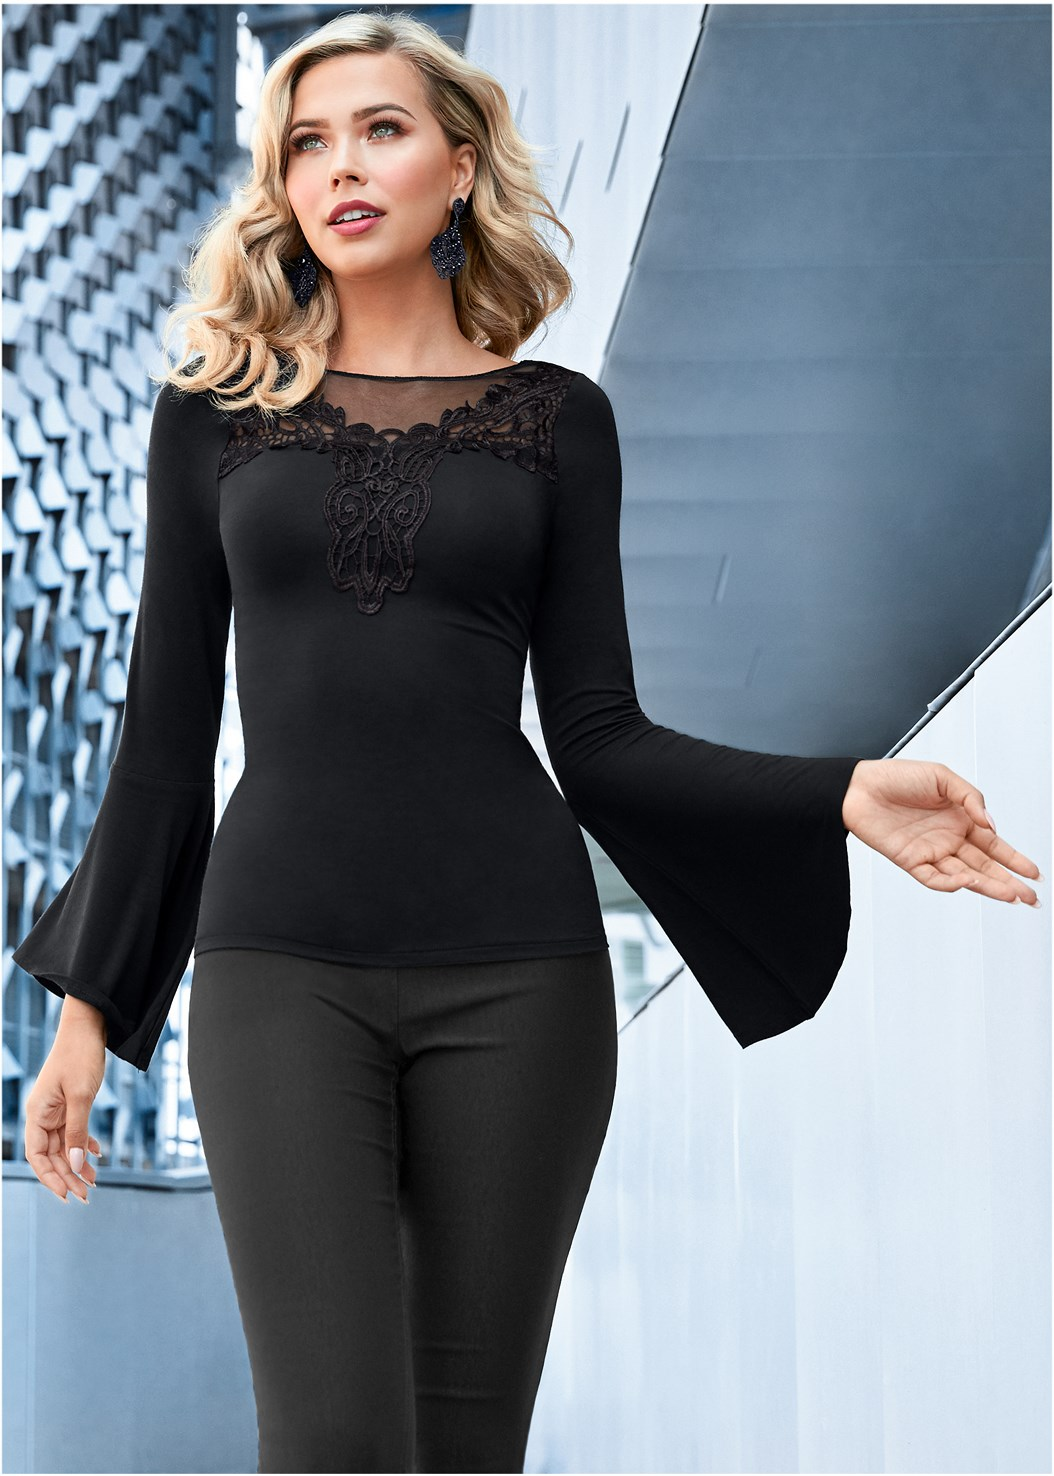 Embroidered Bell Sleeve Top,Mid Rise Color Skinny Jeans,Mid Rise Slimming Stretch Jeggings,Stud Detail Crossbody